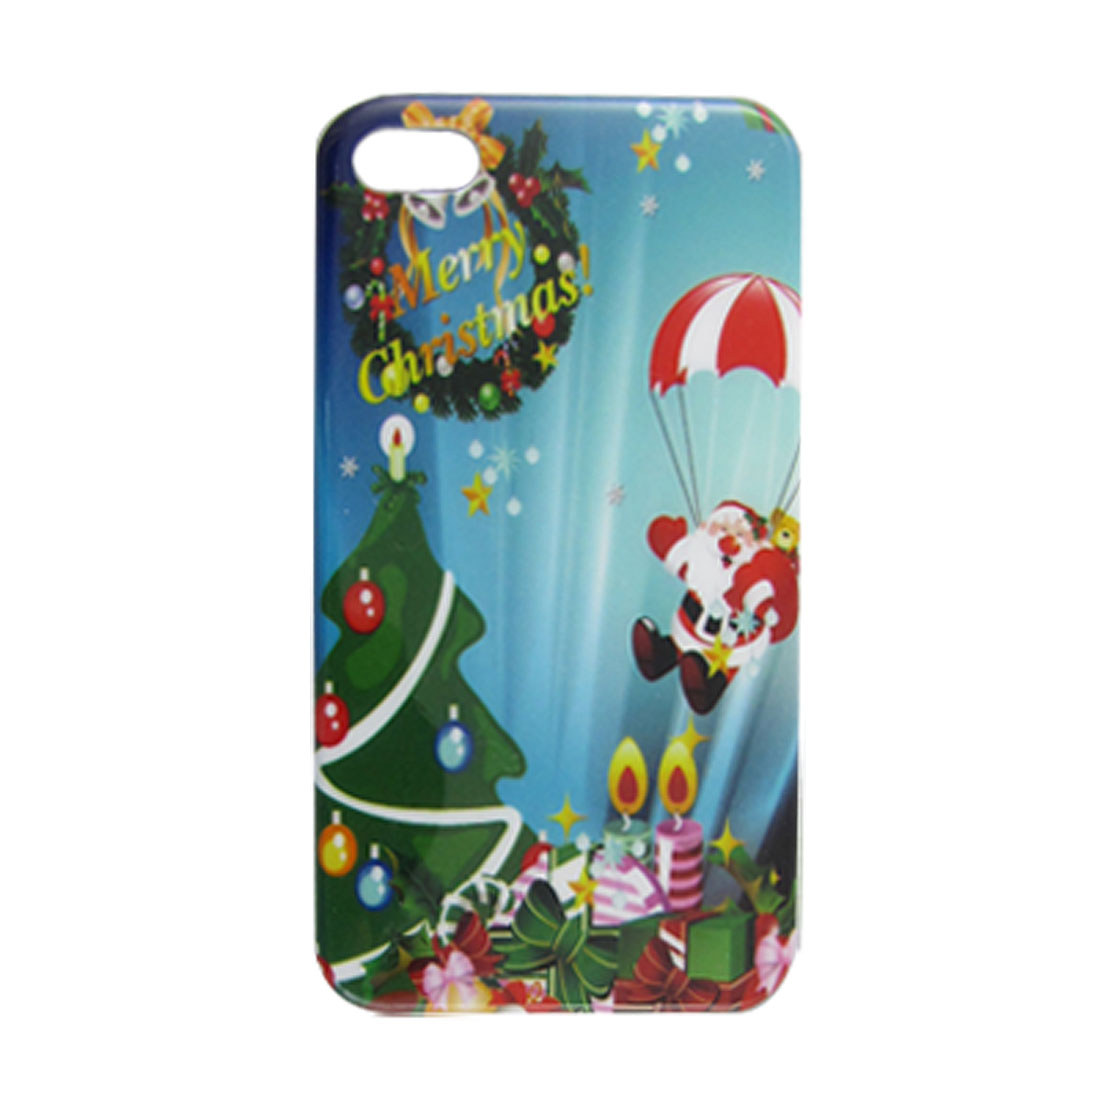 IMD Santa Claus Print Hard Plastic Back Case for iPhone 4 4G 4S